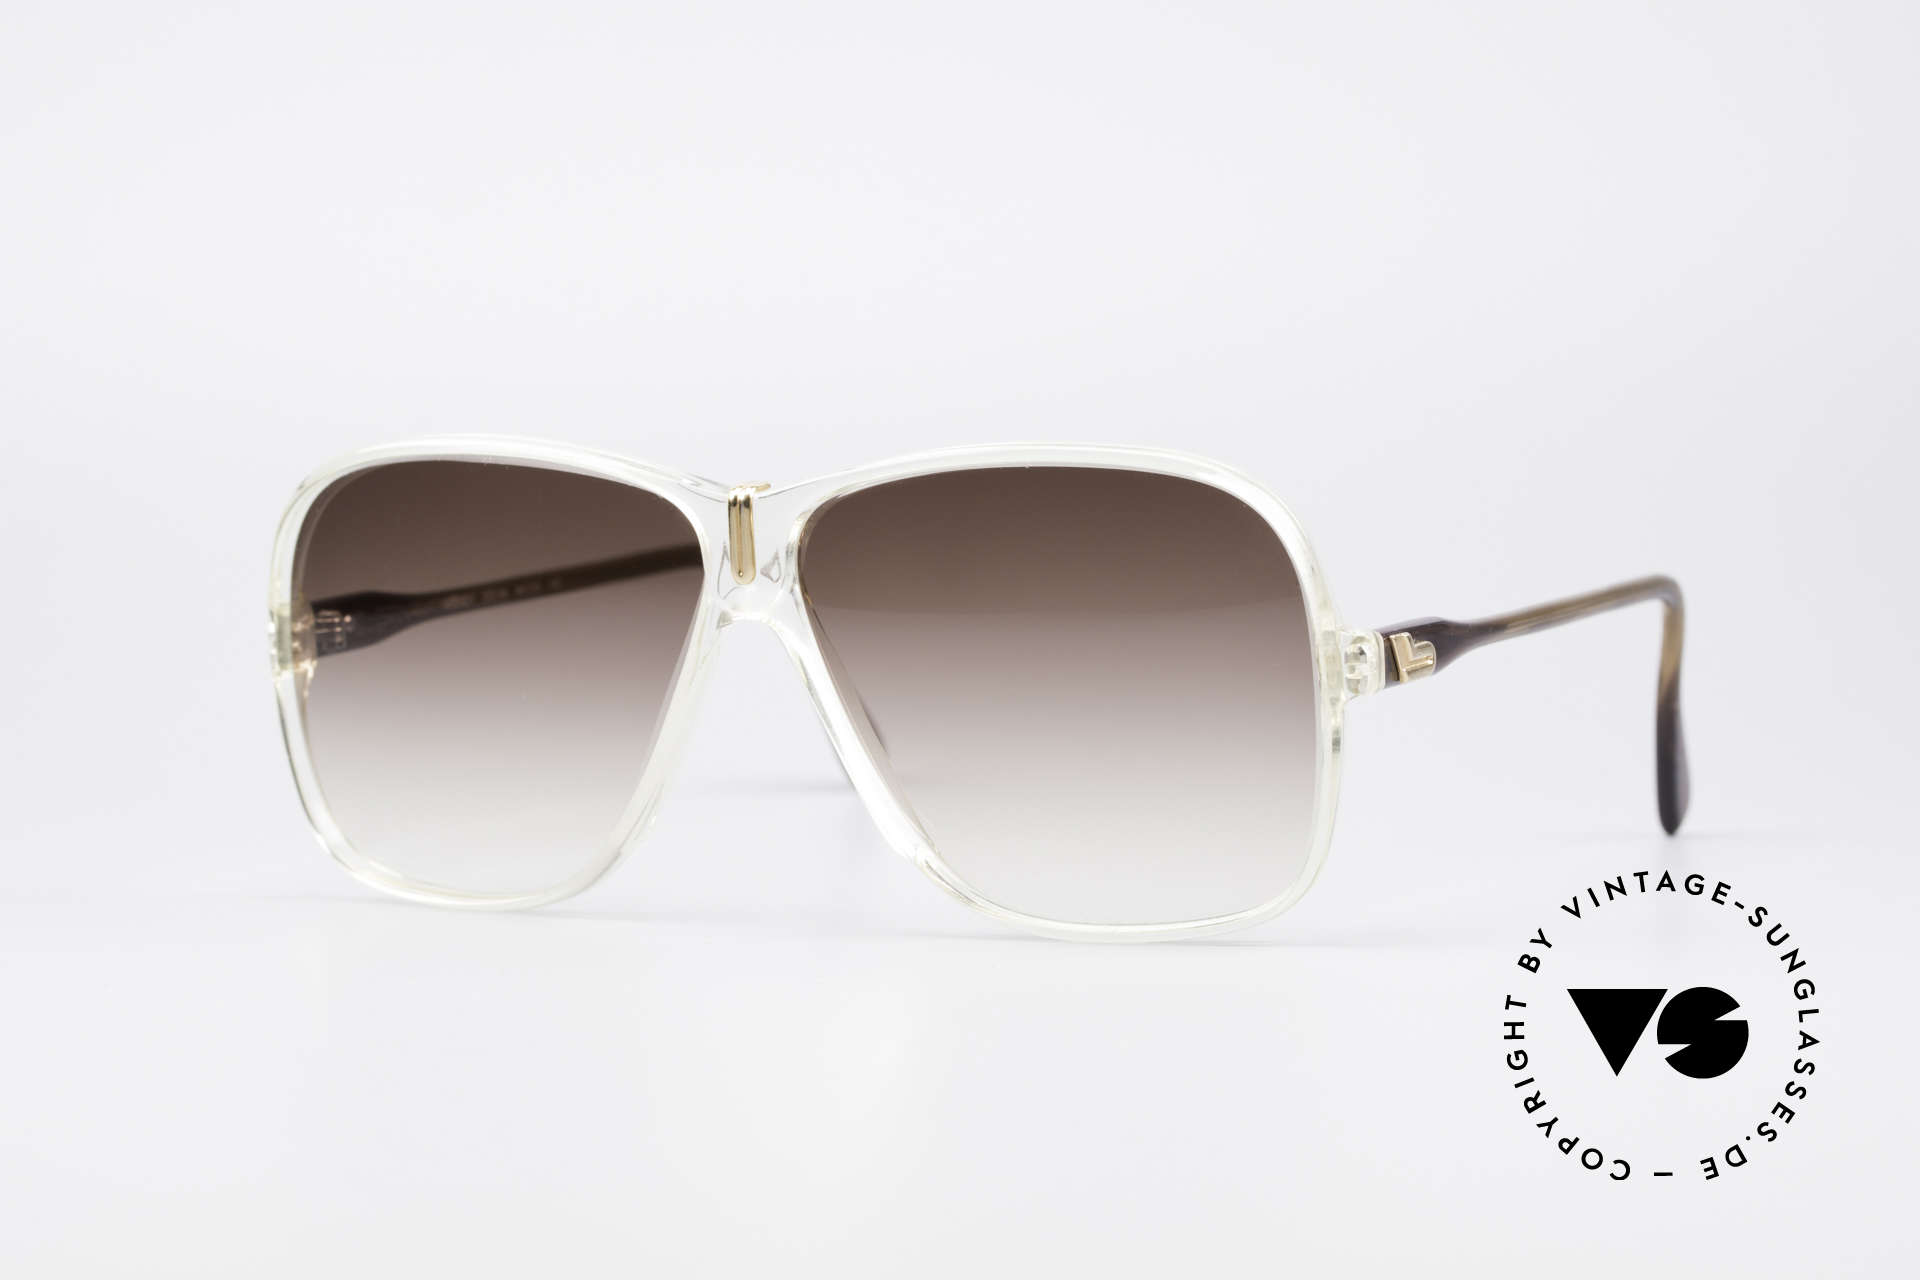 Cazal 621 West Germany Sunglasses, vintage Cazal model from the late 70s/early 80s, Made for Men